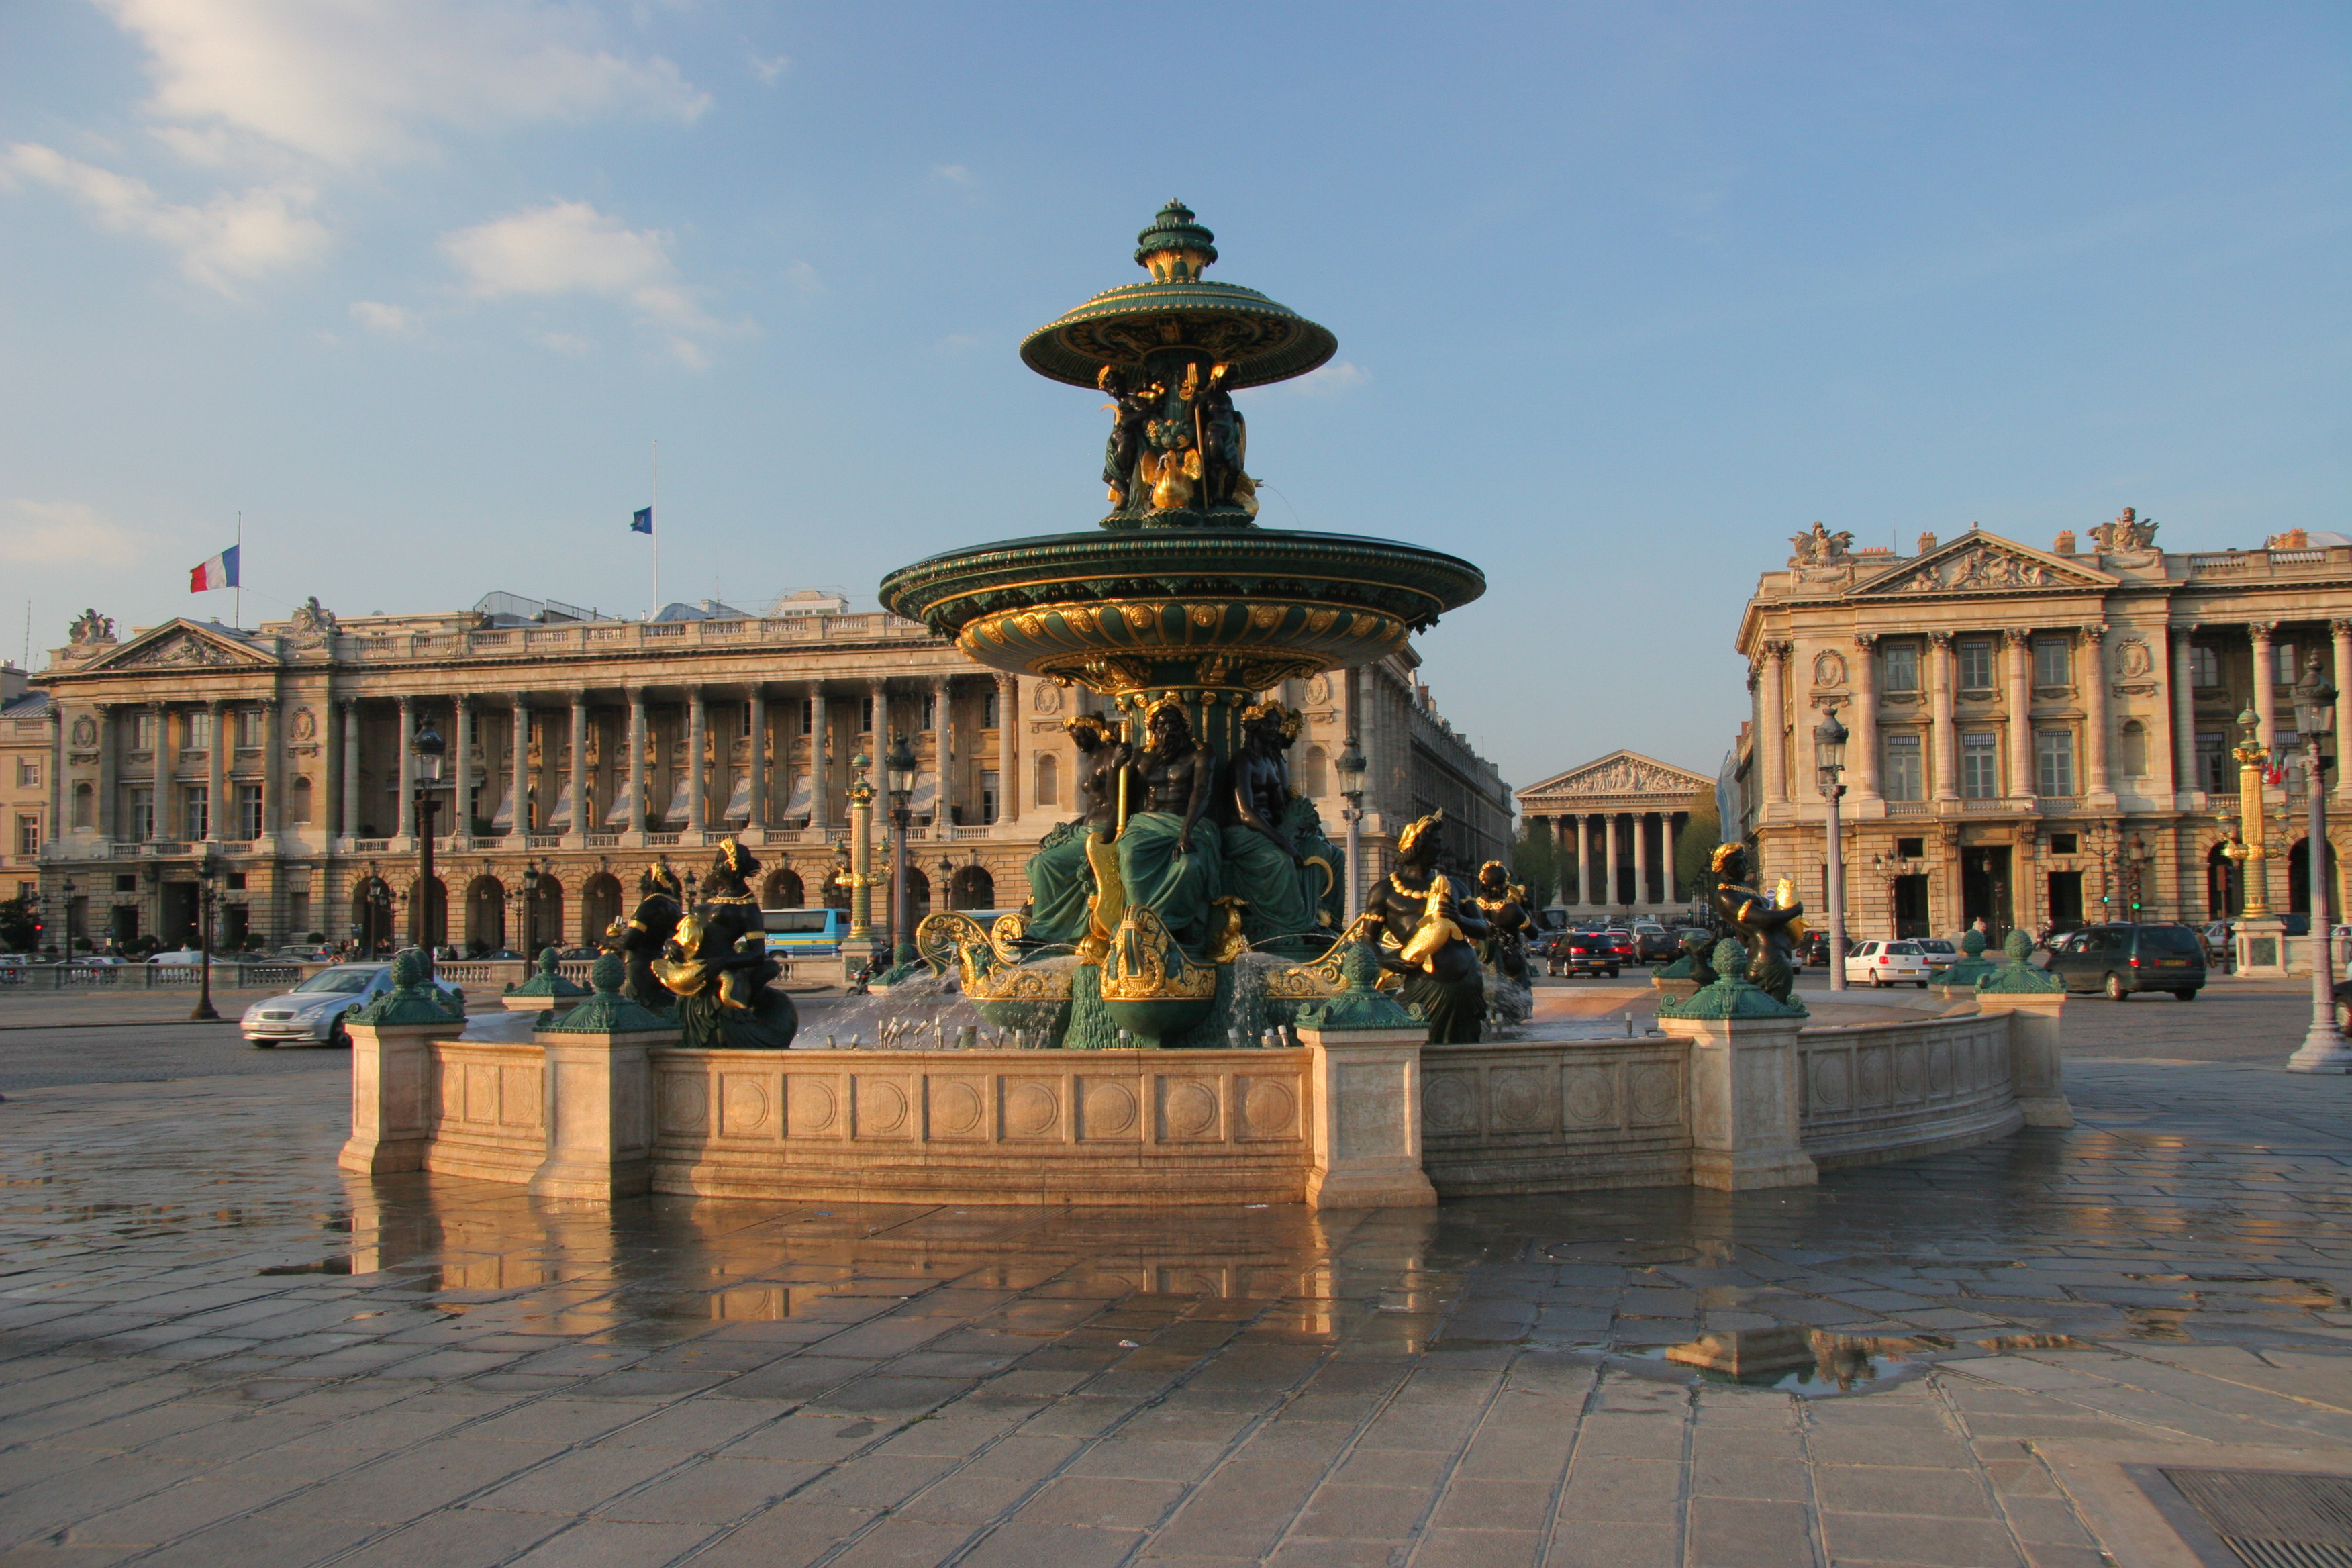 fontaine-place-de-la-concorde-paris.jpg